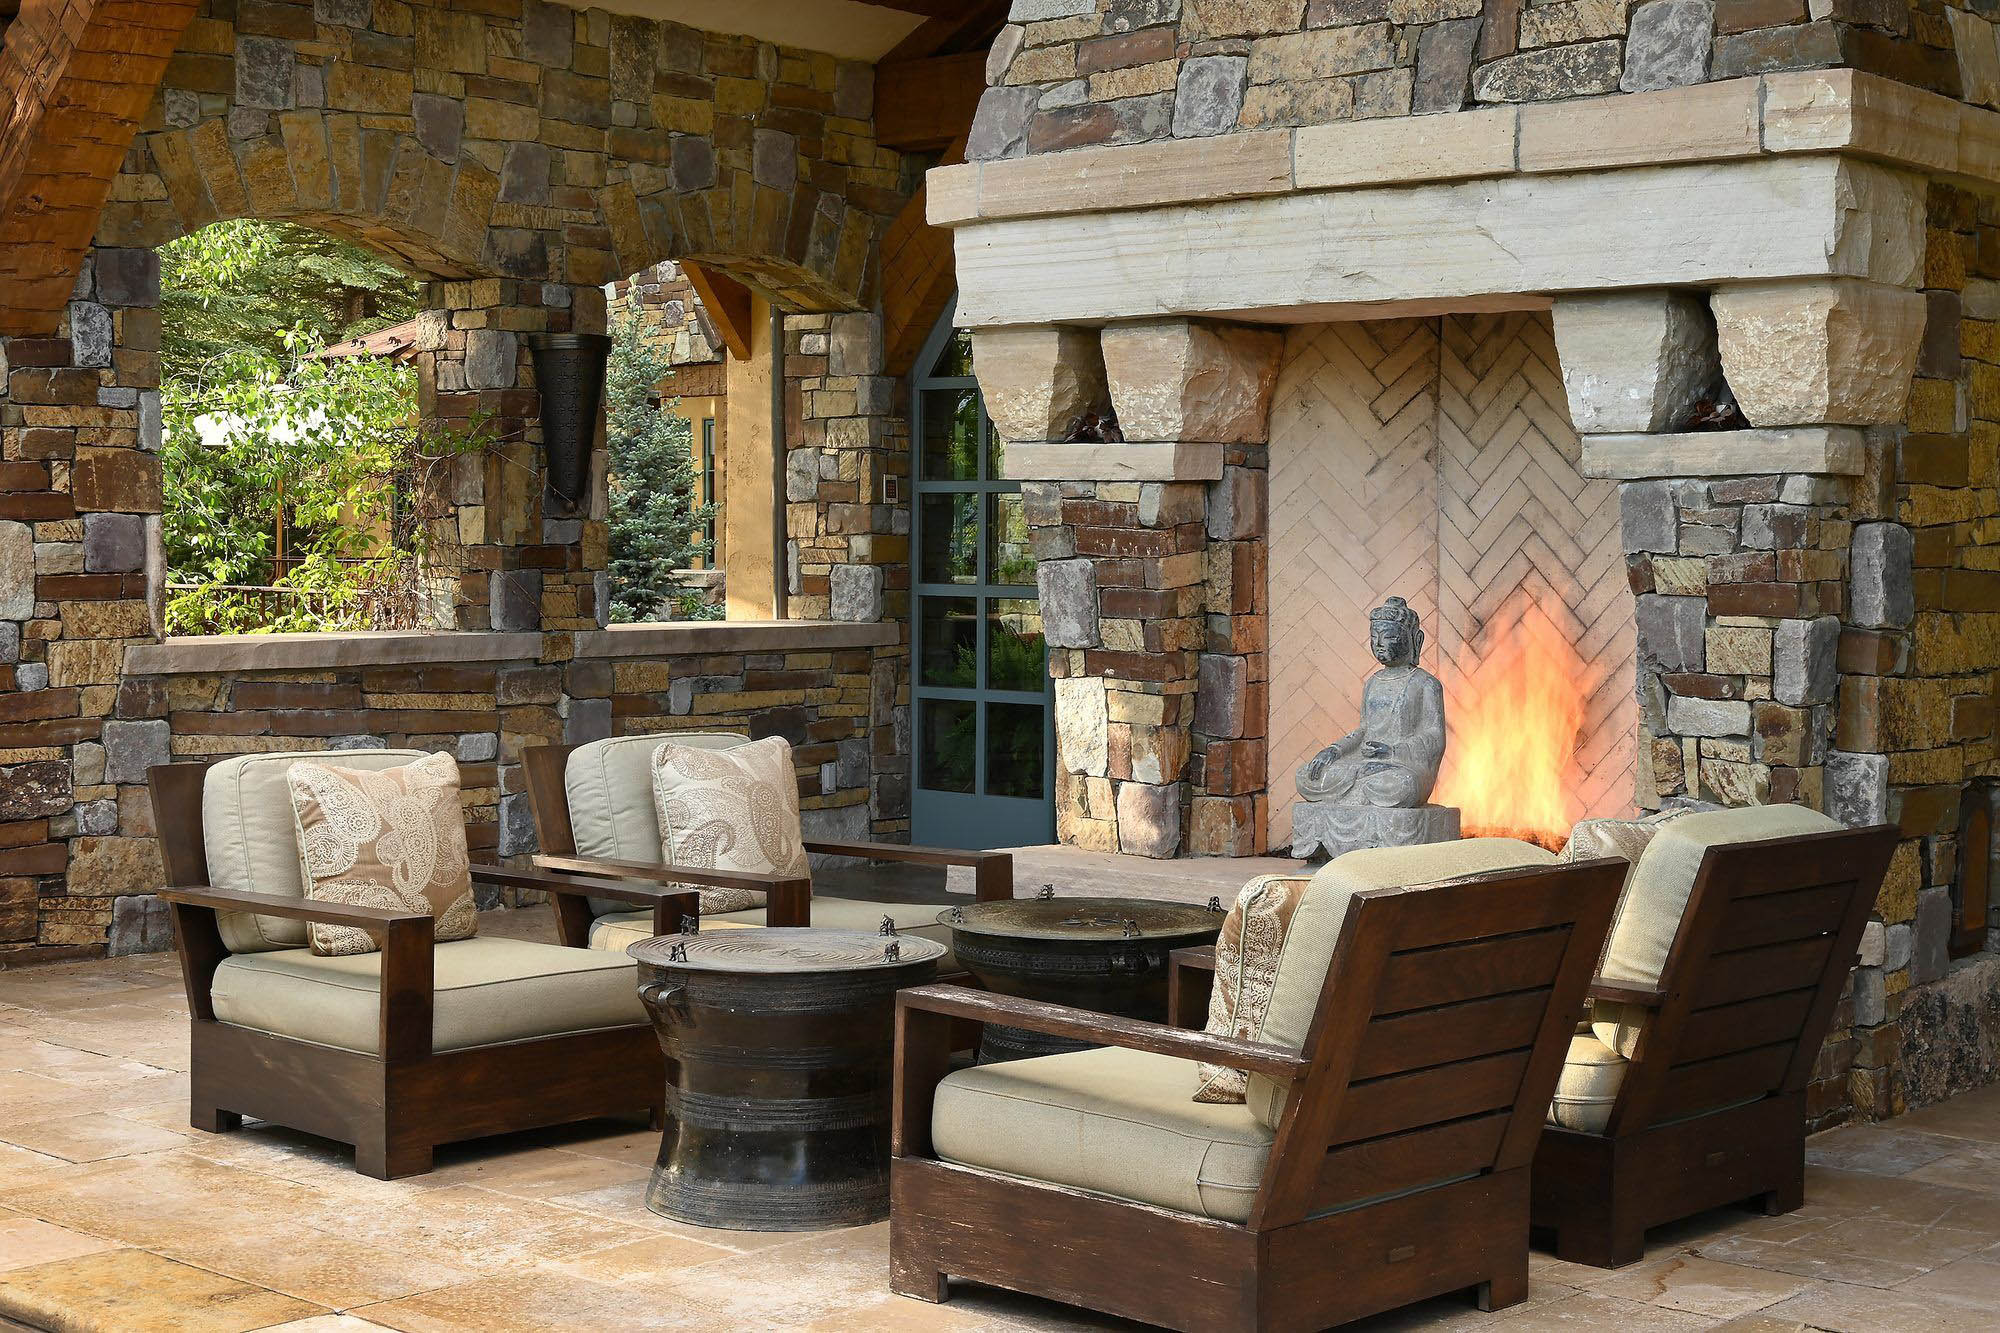 This beautiful outdoor living space features a huge real stone fireplace with matching stone walls, stone tile flooring and wood furniture.